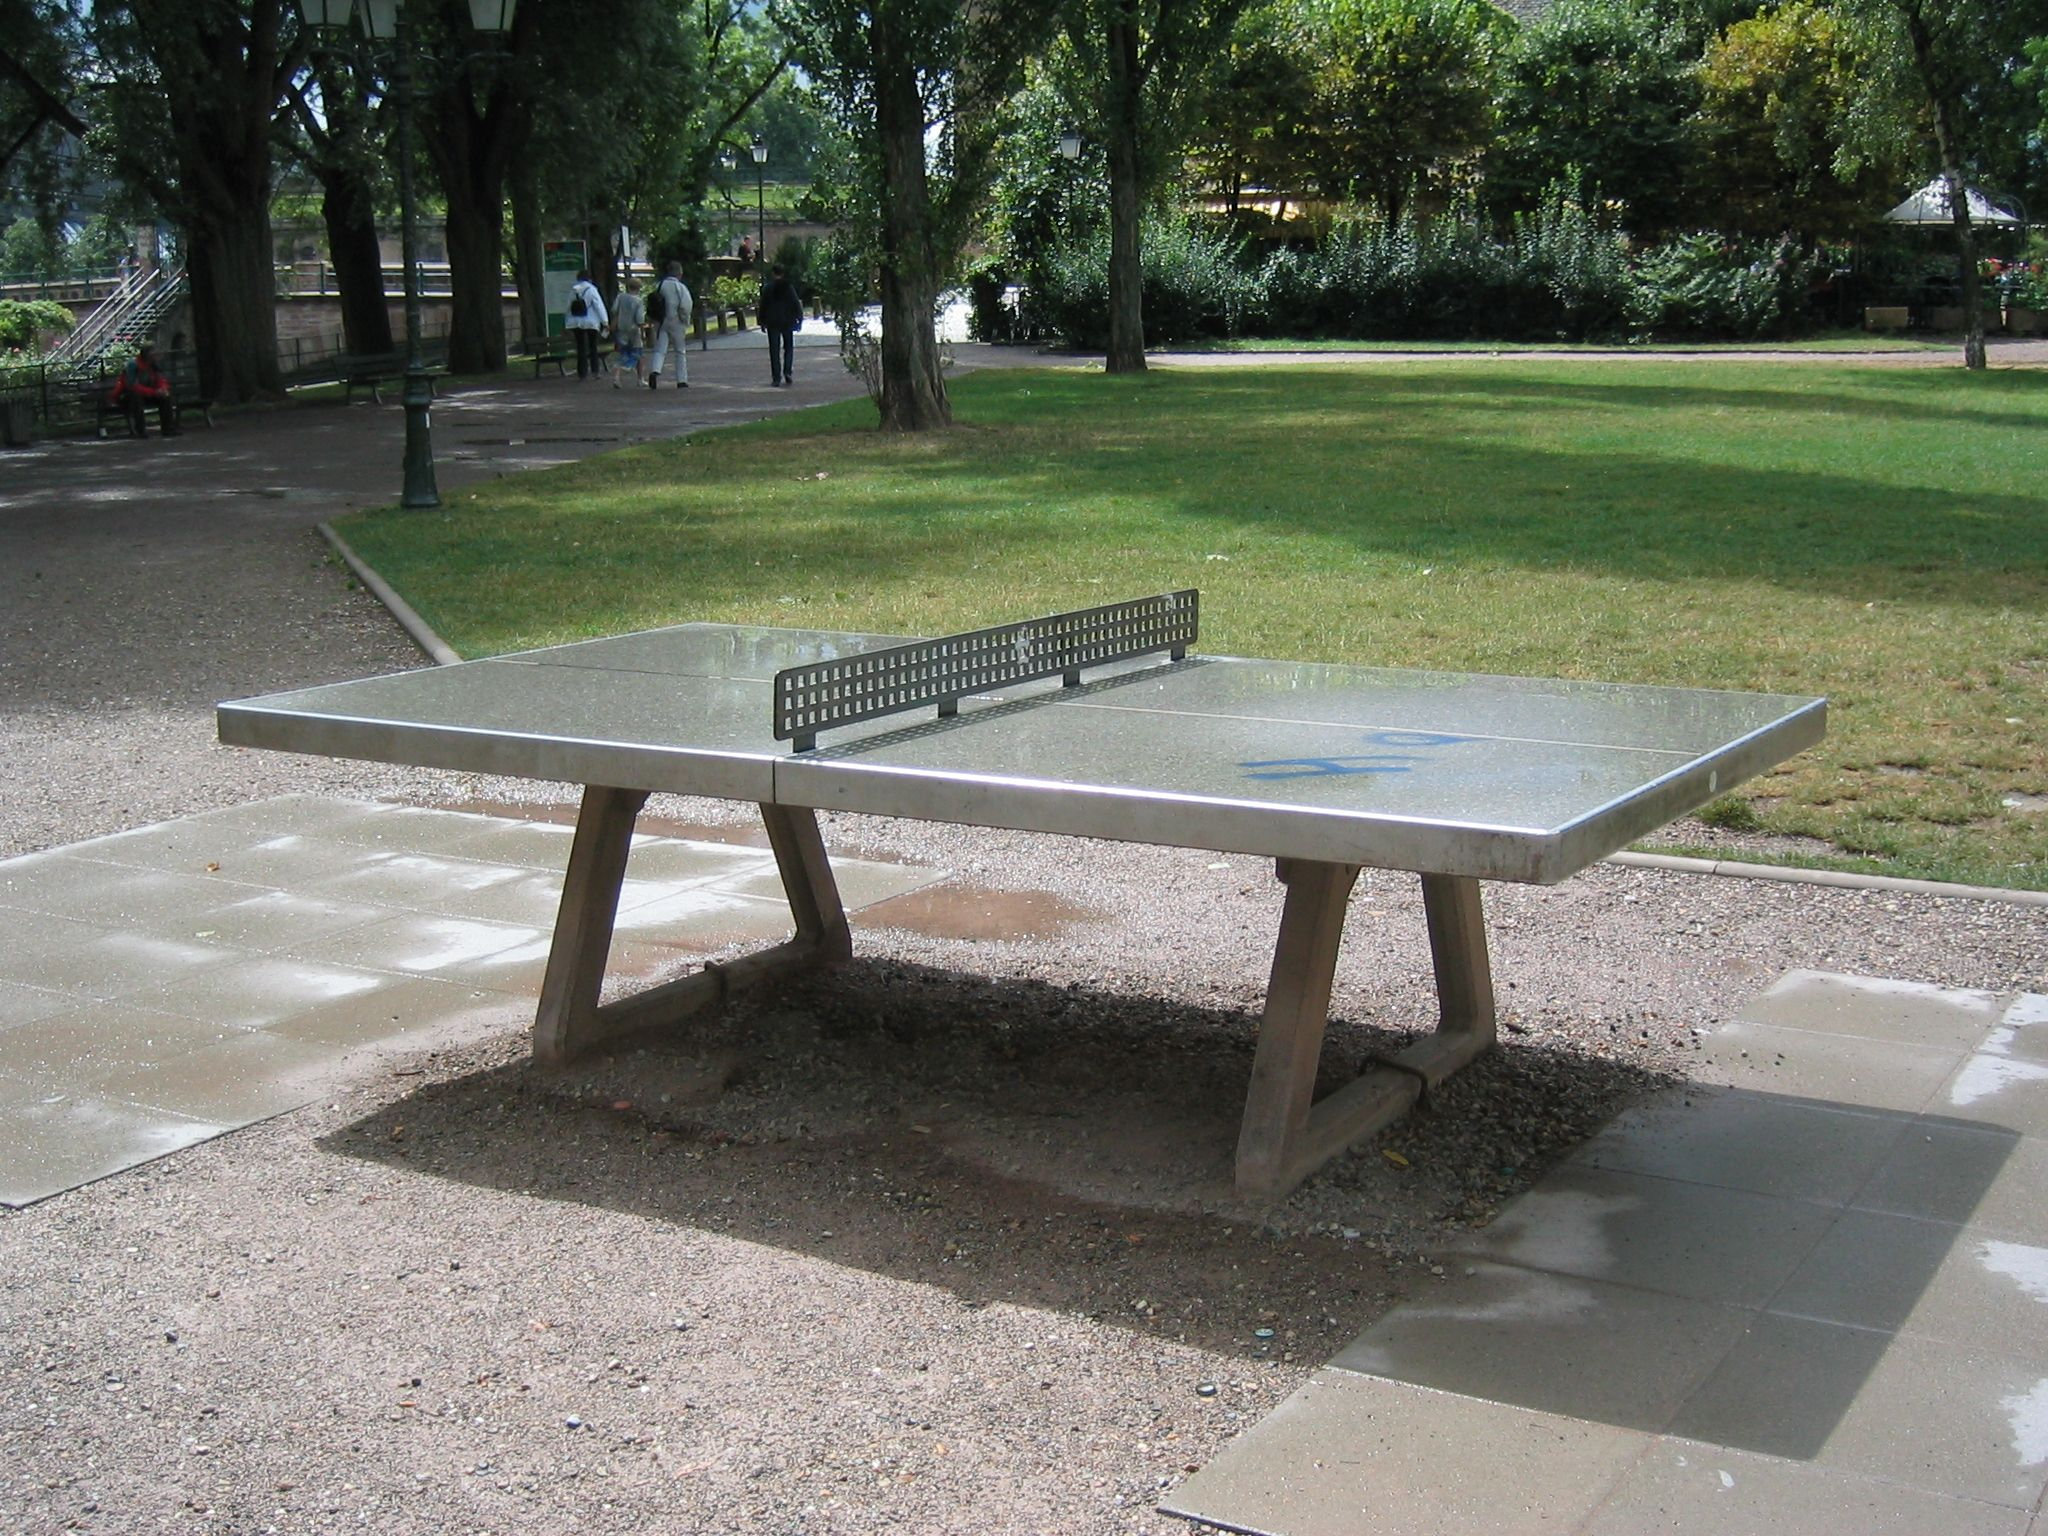 are you looking for game table installation / assembly or moving